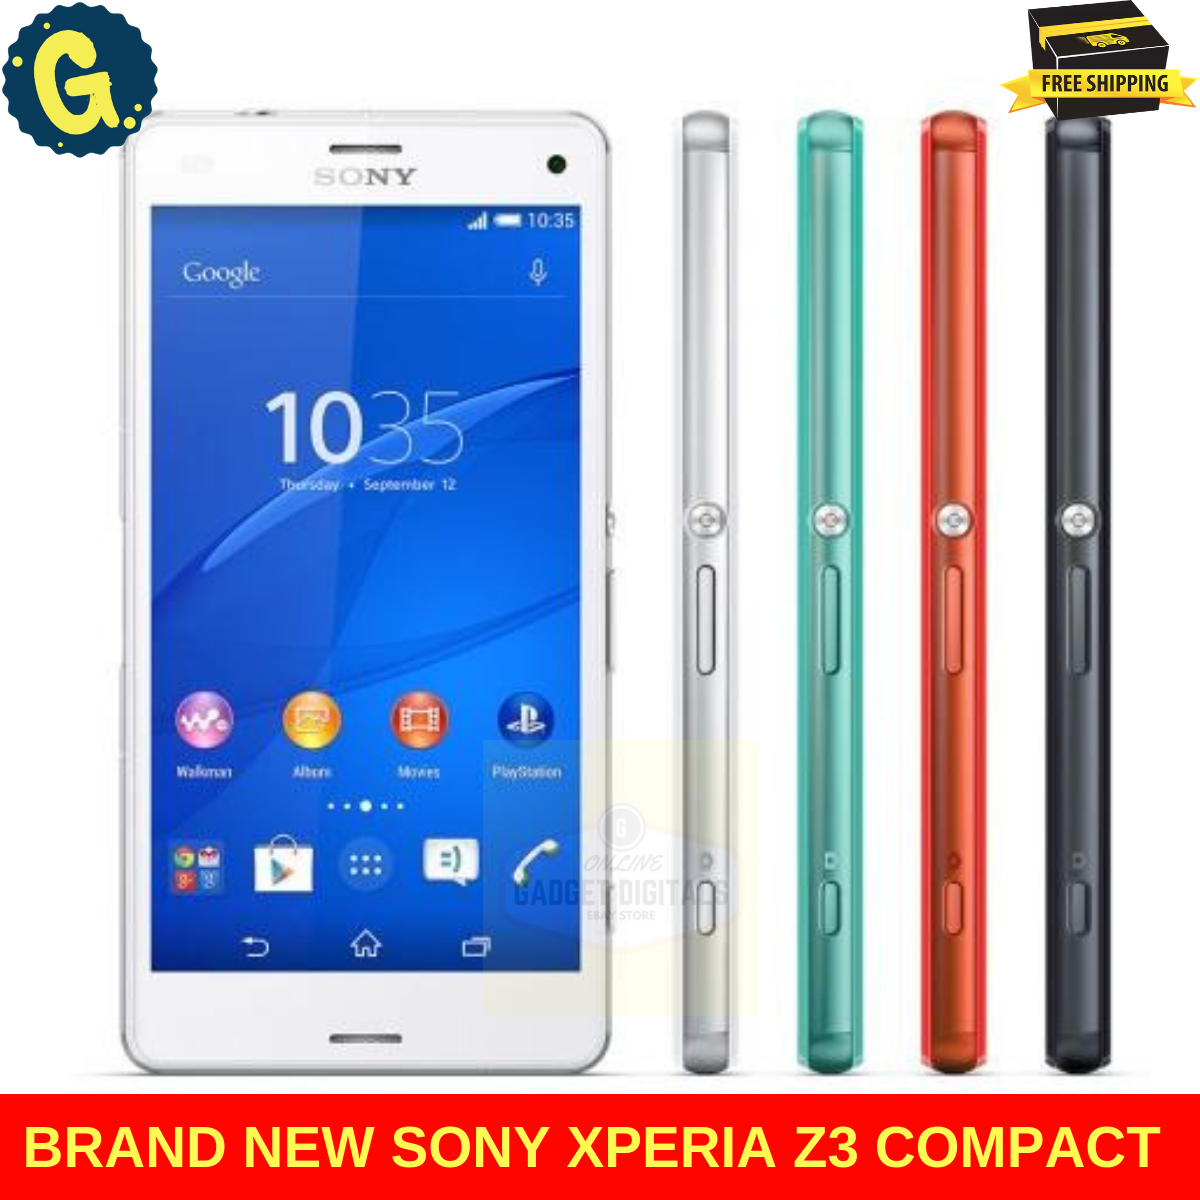 Android Phone - Brand New Sony Xperia Z3 Compact White E5803 16GB Unlocked Android Smart Phone